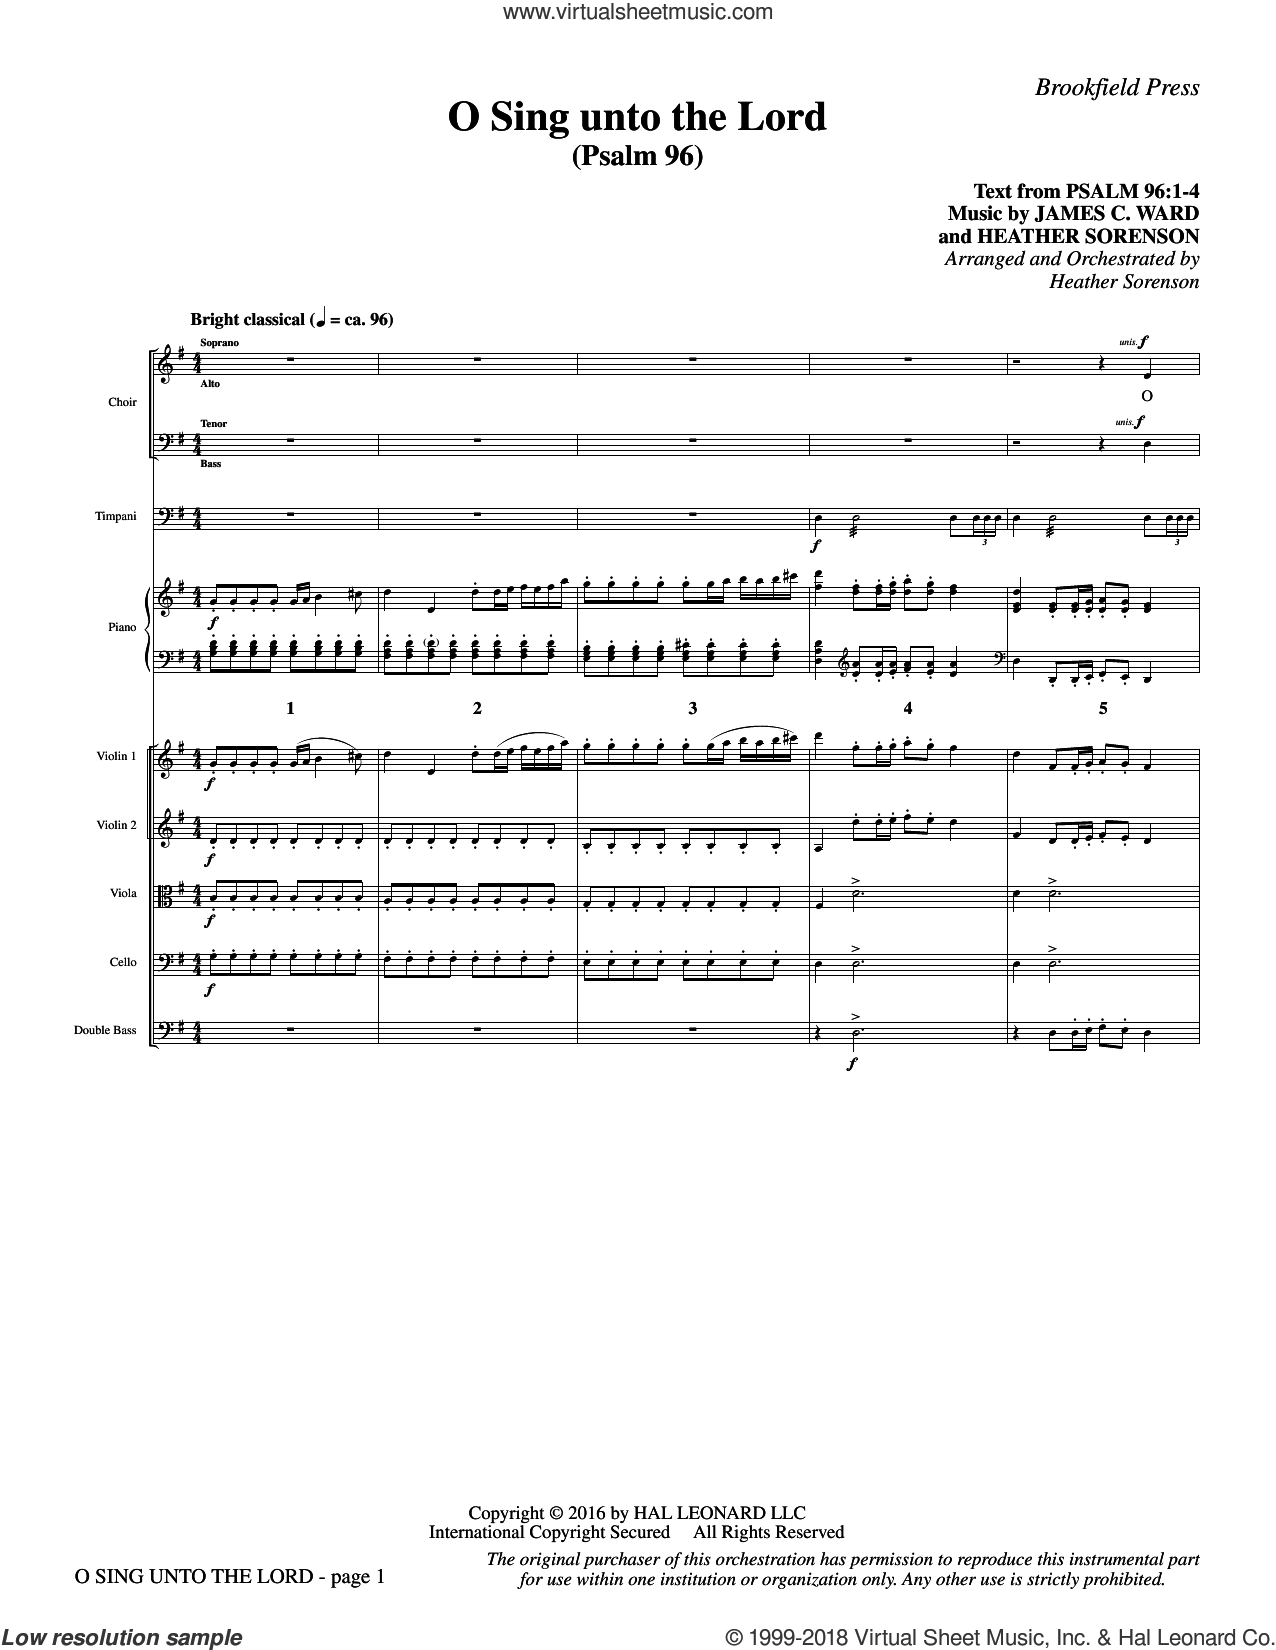 O Sing Unto the Lord (COMPLETE) sheet music for orchestra/band by Heather Sorenson and James C. Ward, intermediate skill level